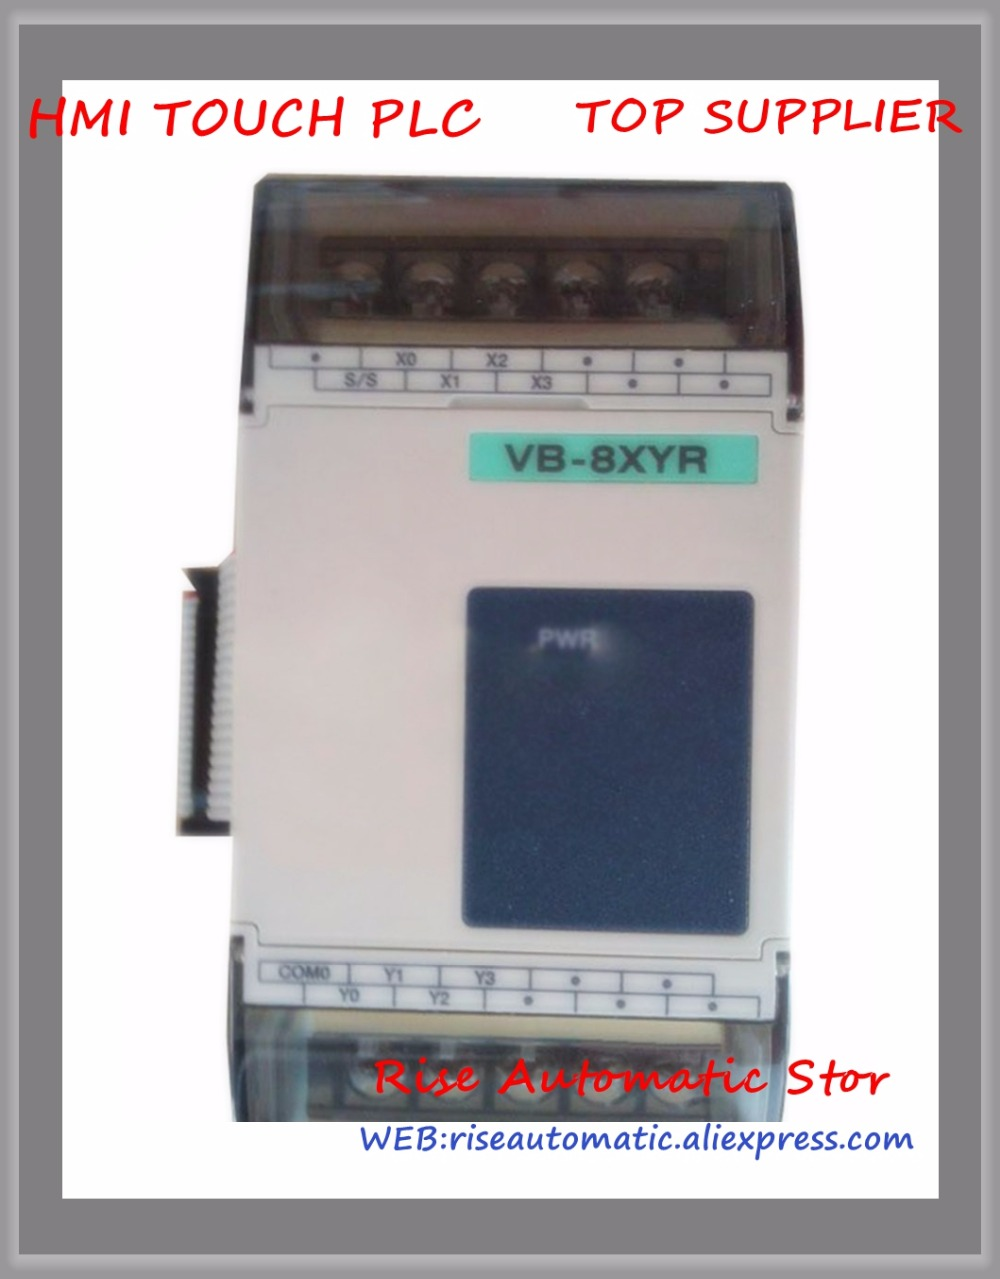 Brand New Original VB-8XYR PLC 24VDC 4 point DC24V input 4 point output Expansion Module стоимость